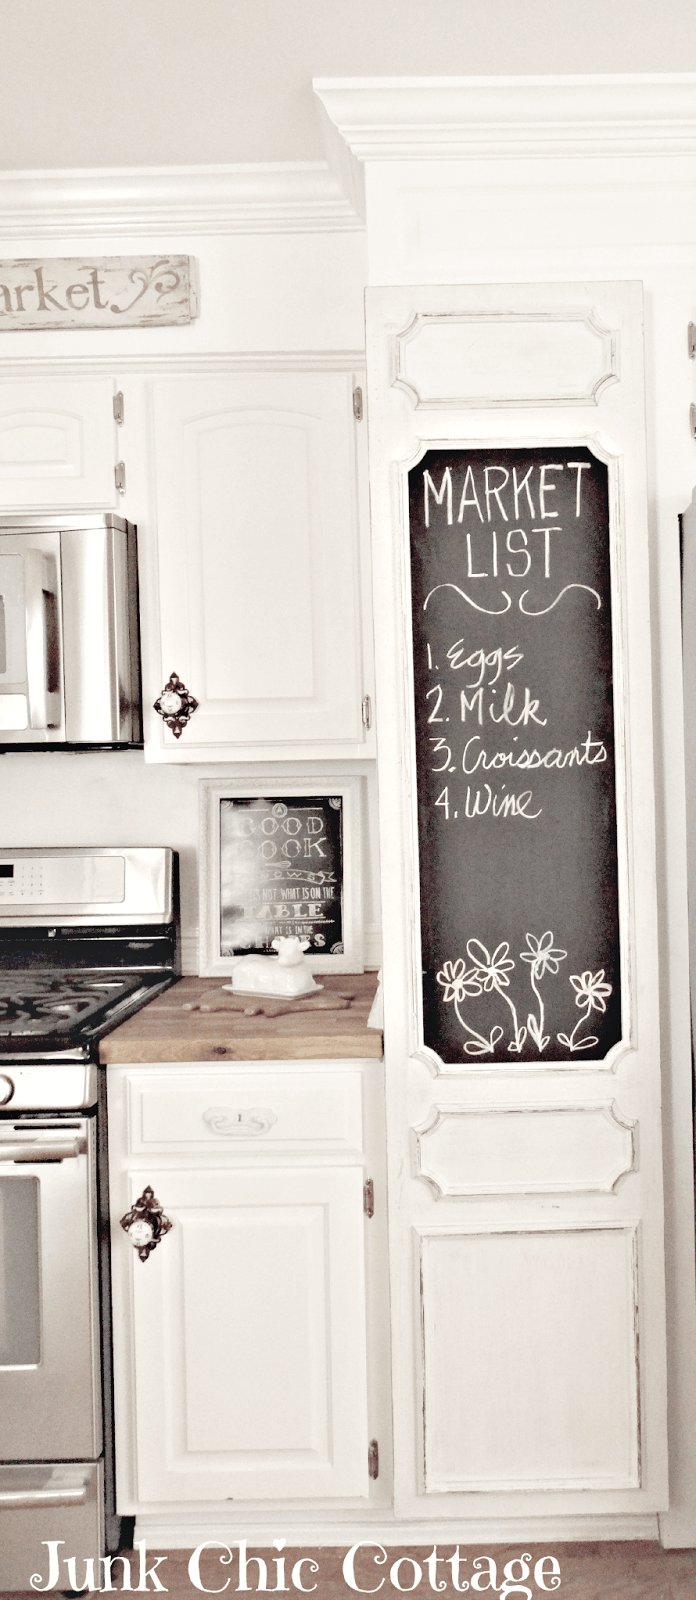 Pantry Door with Oversized Chalkboard